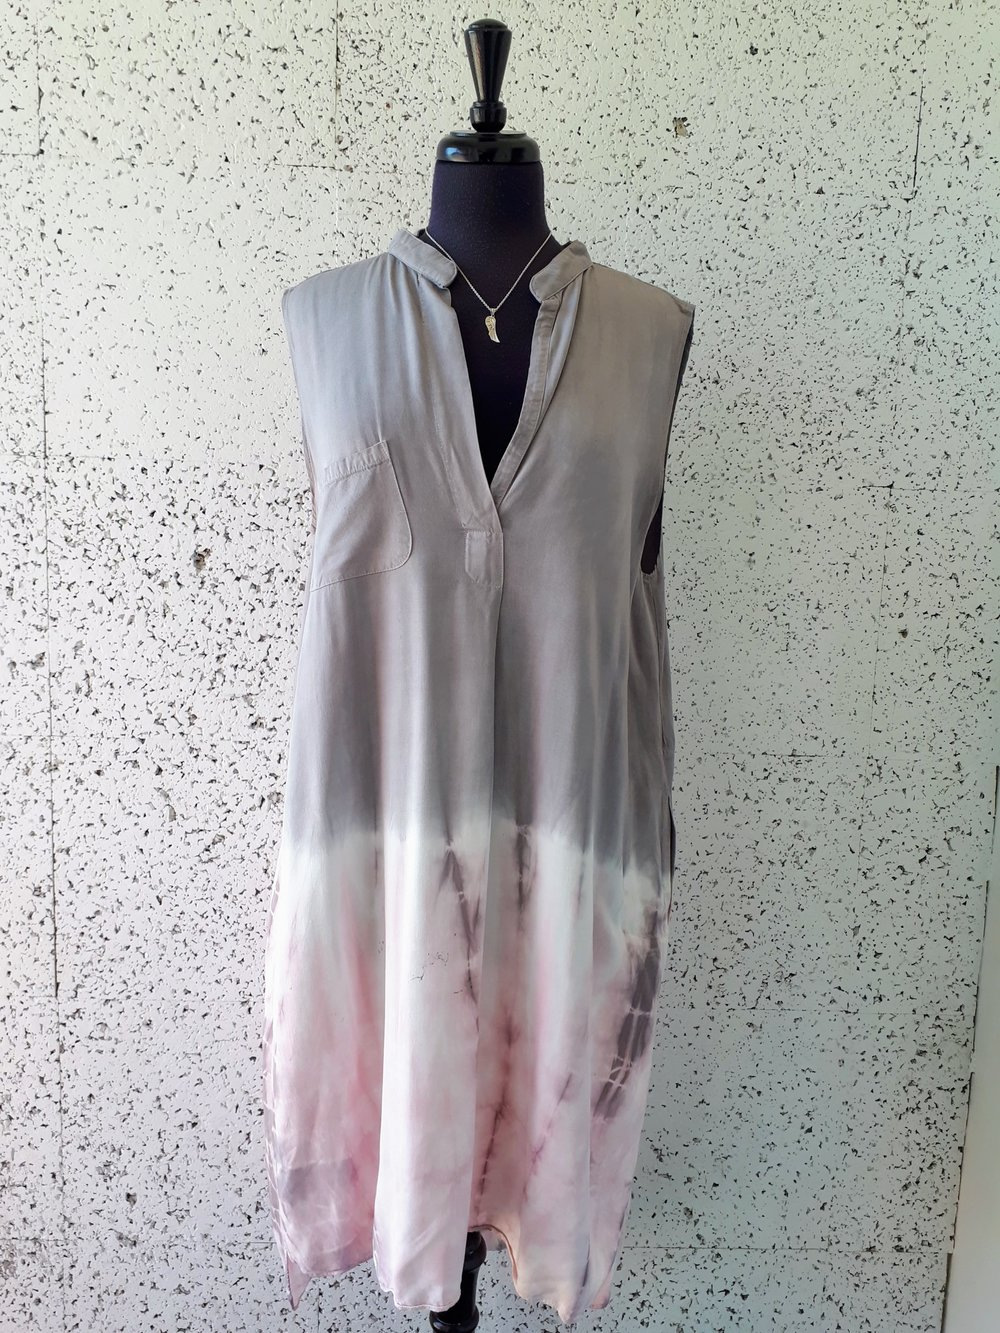 Campre dress; Size L, $48 (Necklace, $14)